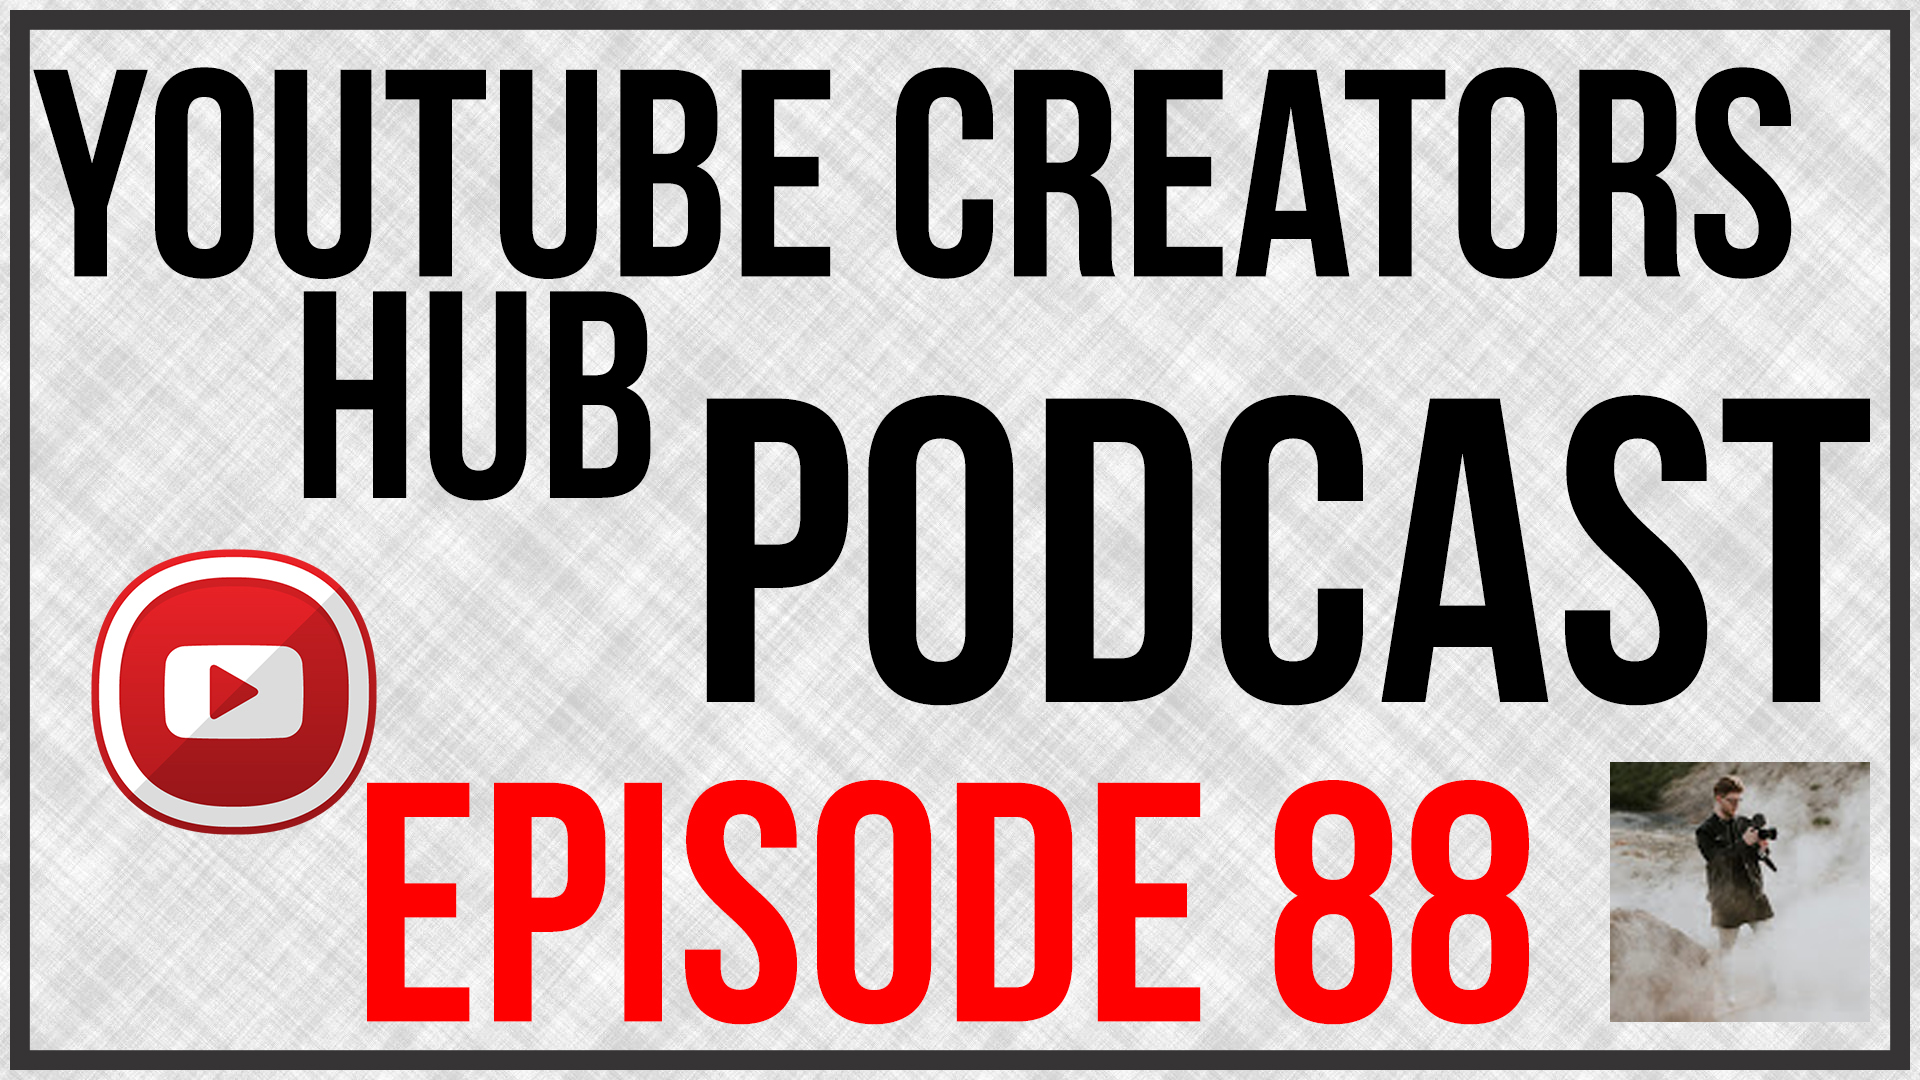 YouTube Creators Hub Podcast Episode 88